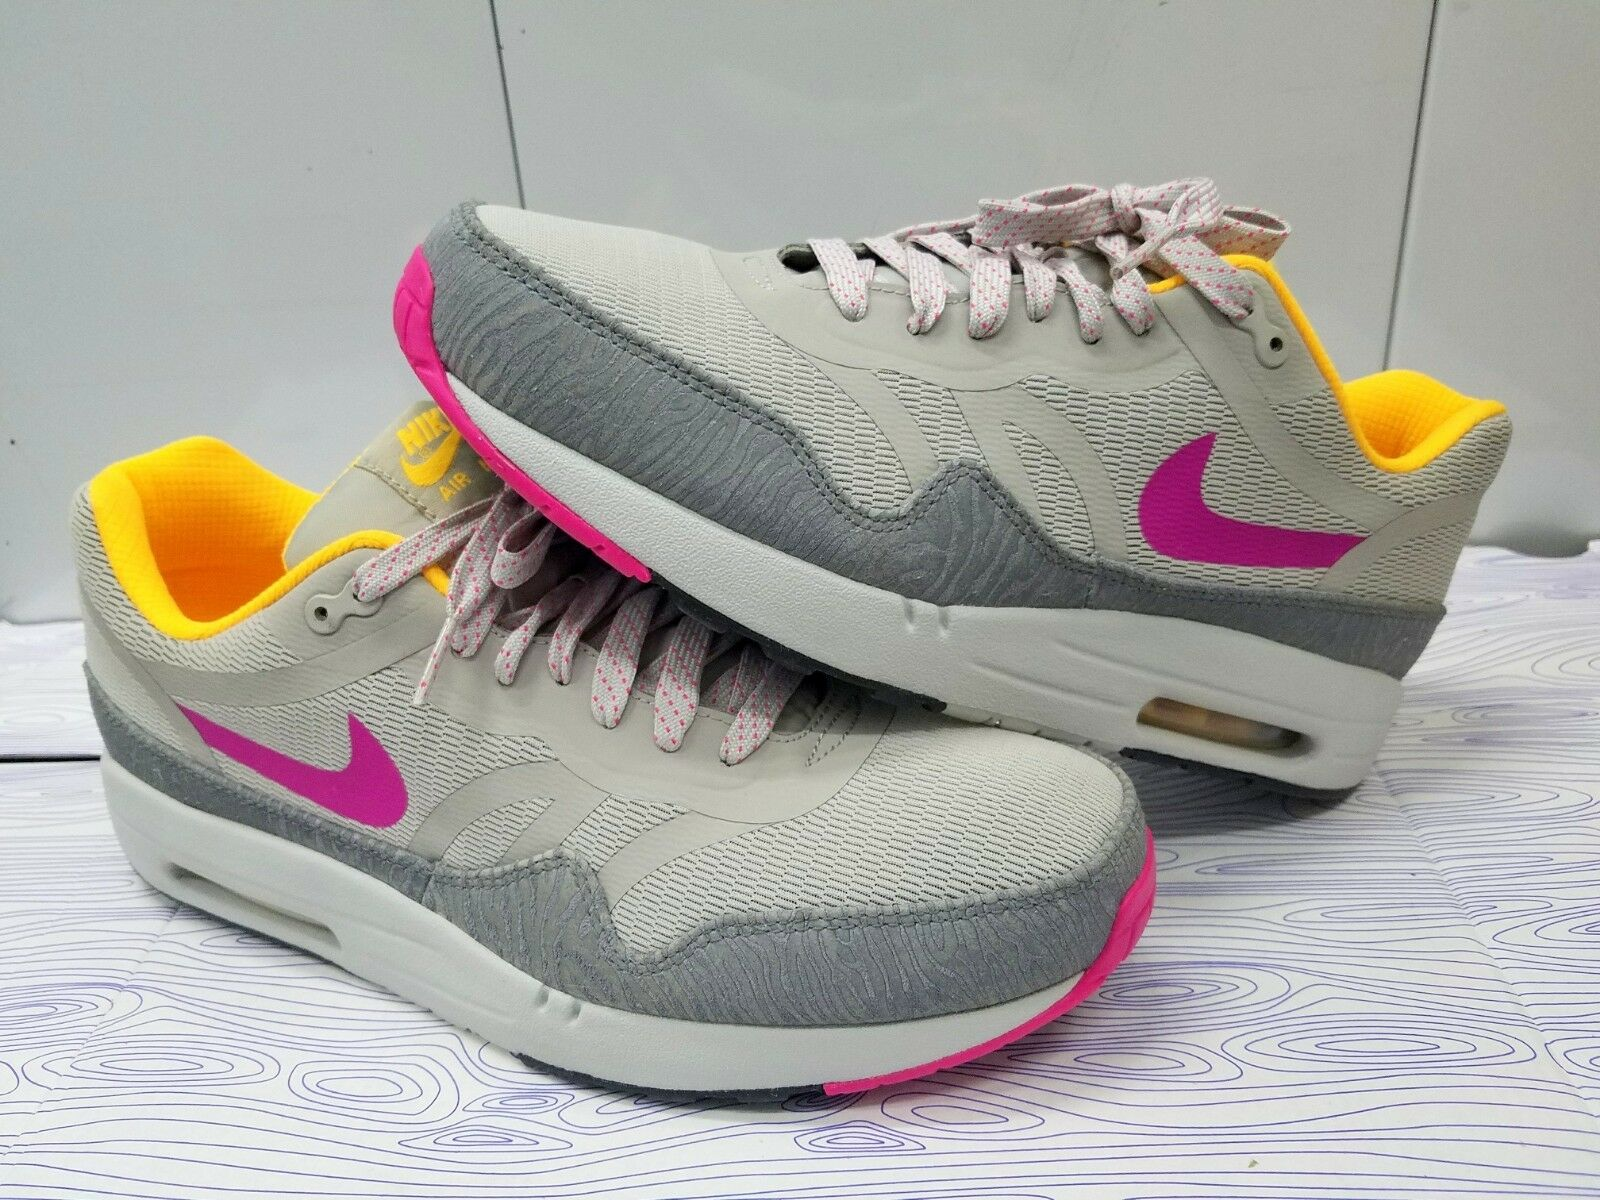 BRAND NEW NIKE AIR MAX 1 LIMITED EDITION MEN'S SIZE 9?599514-060 VERY RARE